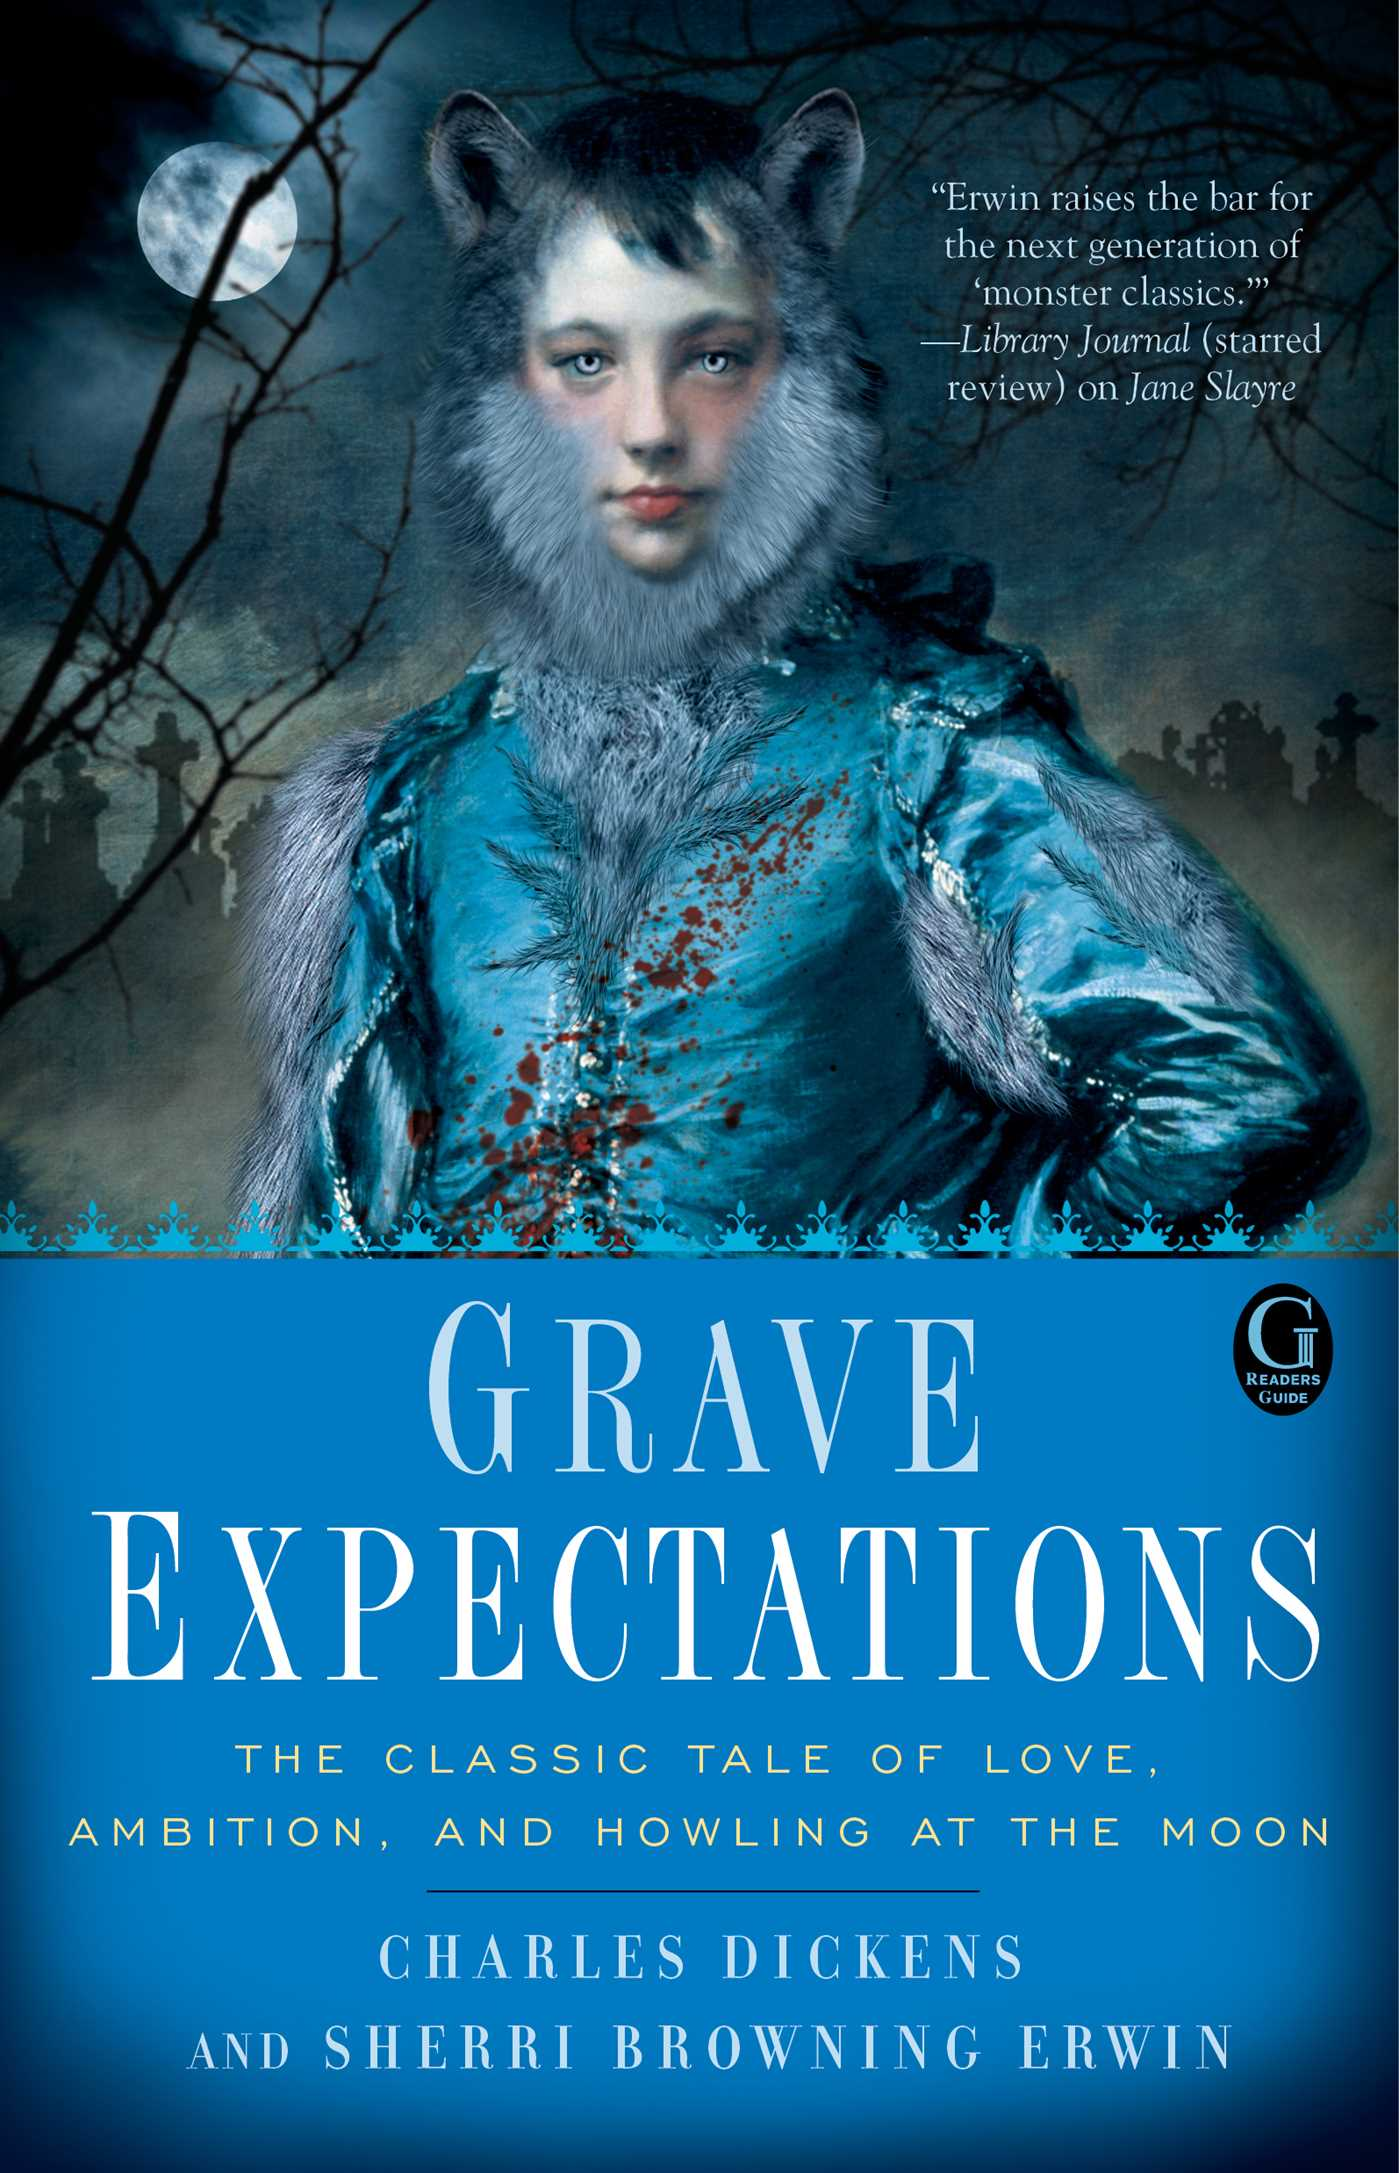 Grave expectations 9781451617252 hr